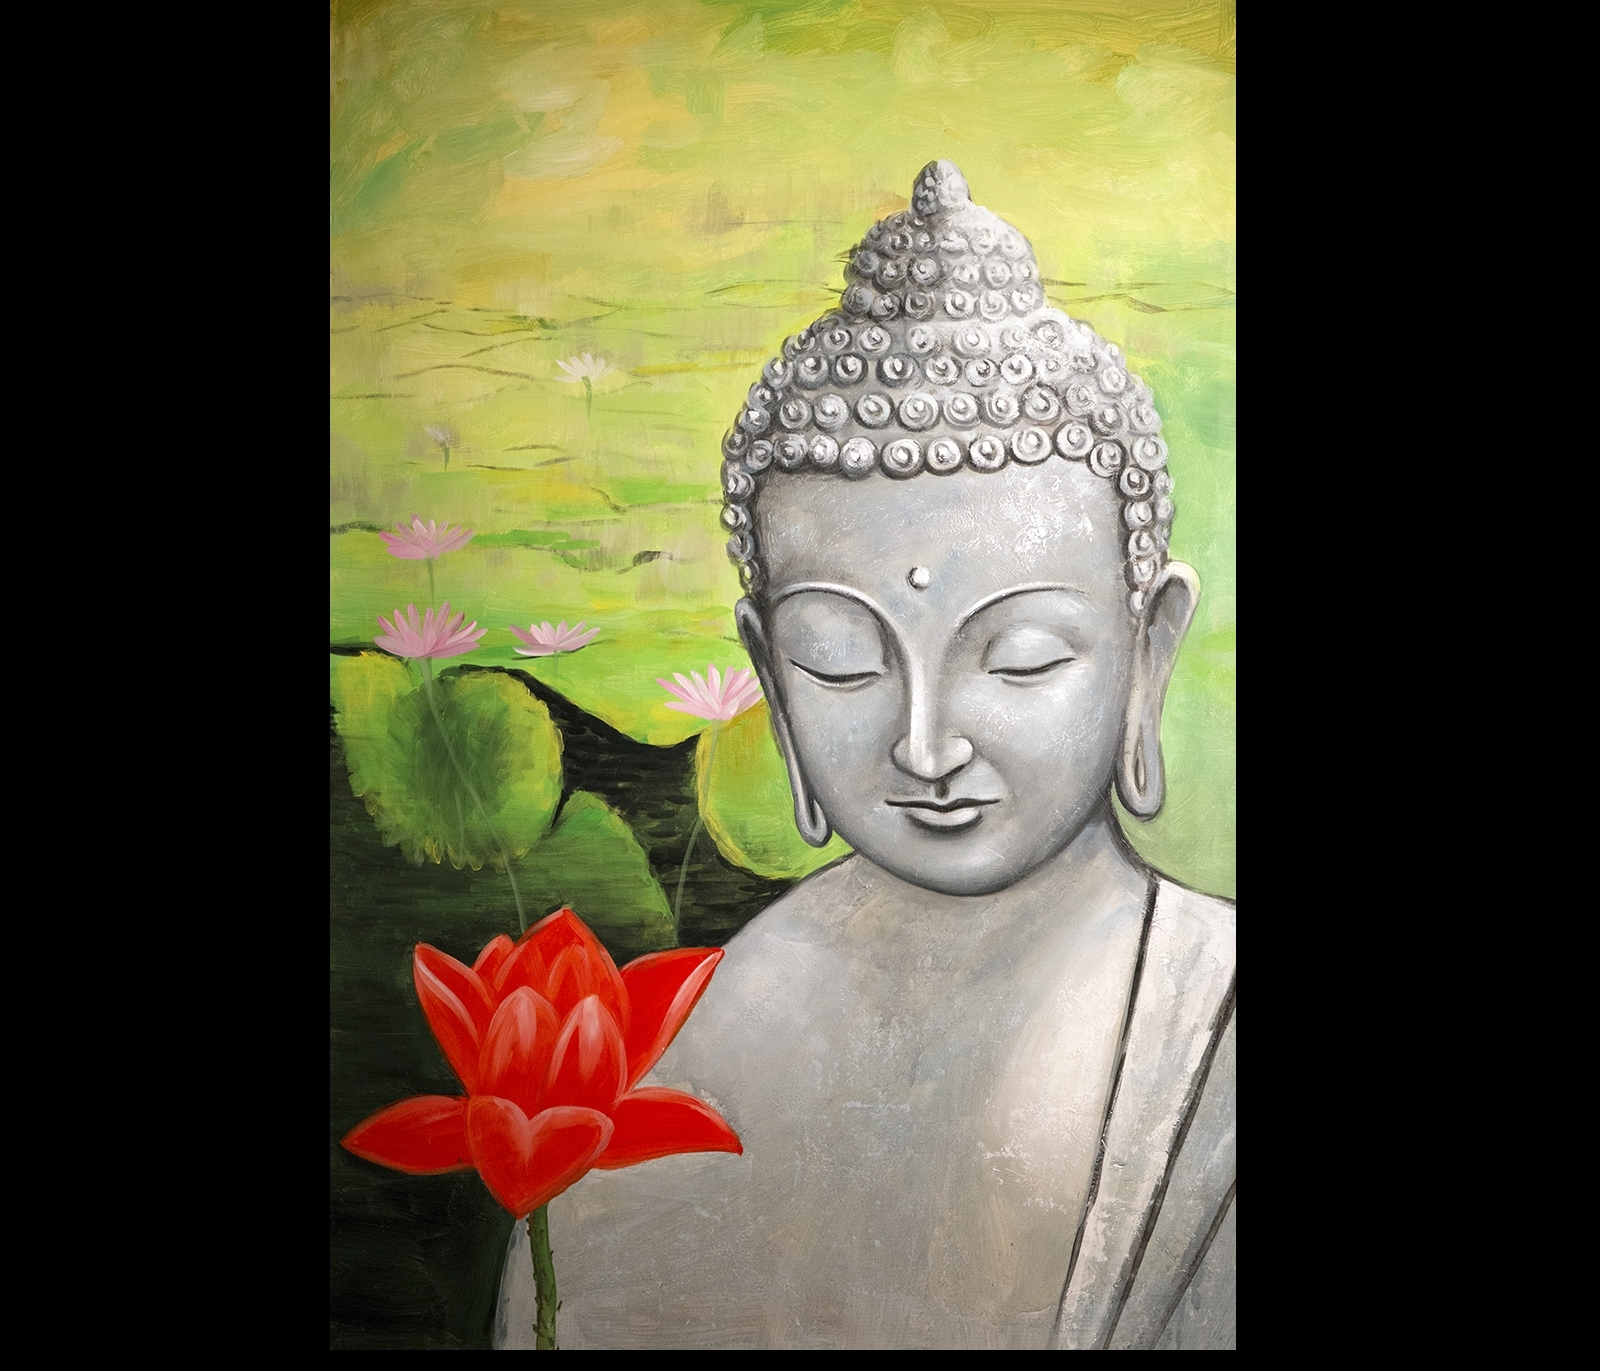 Zen Buddha Art Modern Wall Decor Buddha Painting Abstract Canvas Regarding Current Abstract Buddha Wall Art (Gallery 3 of 20)